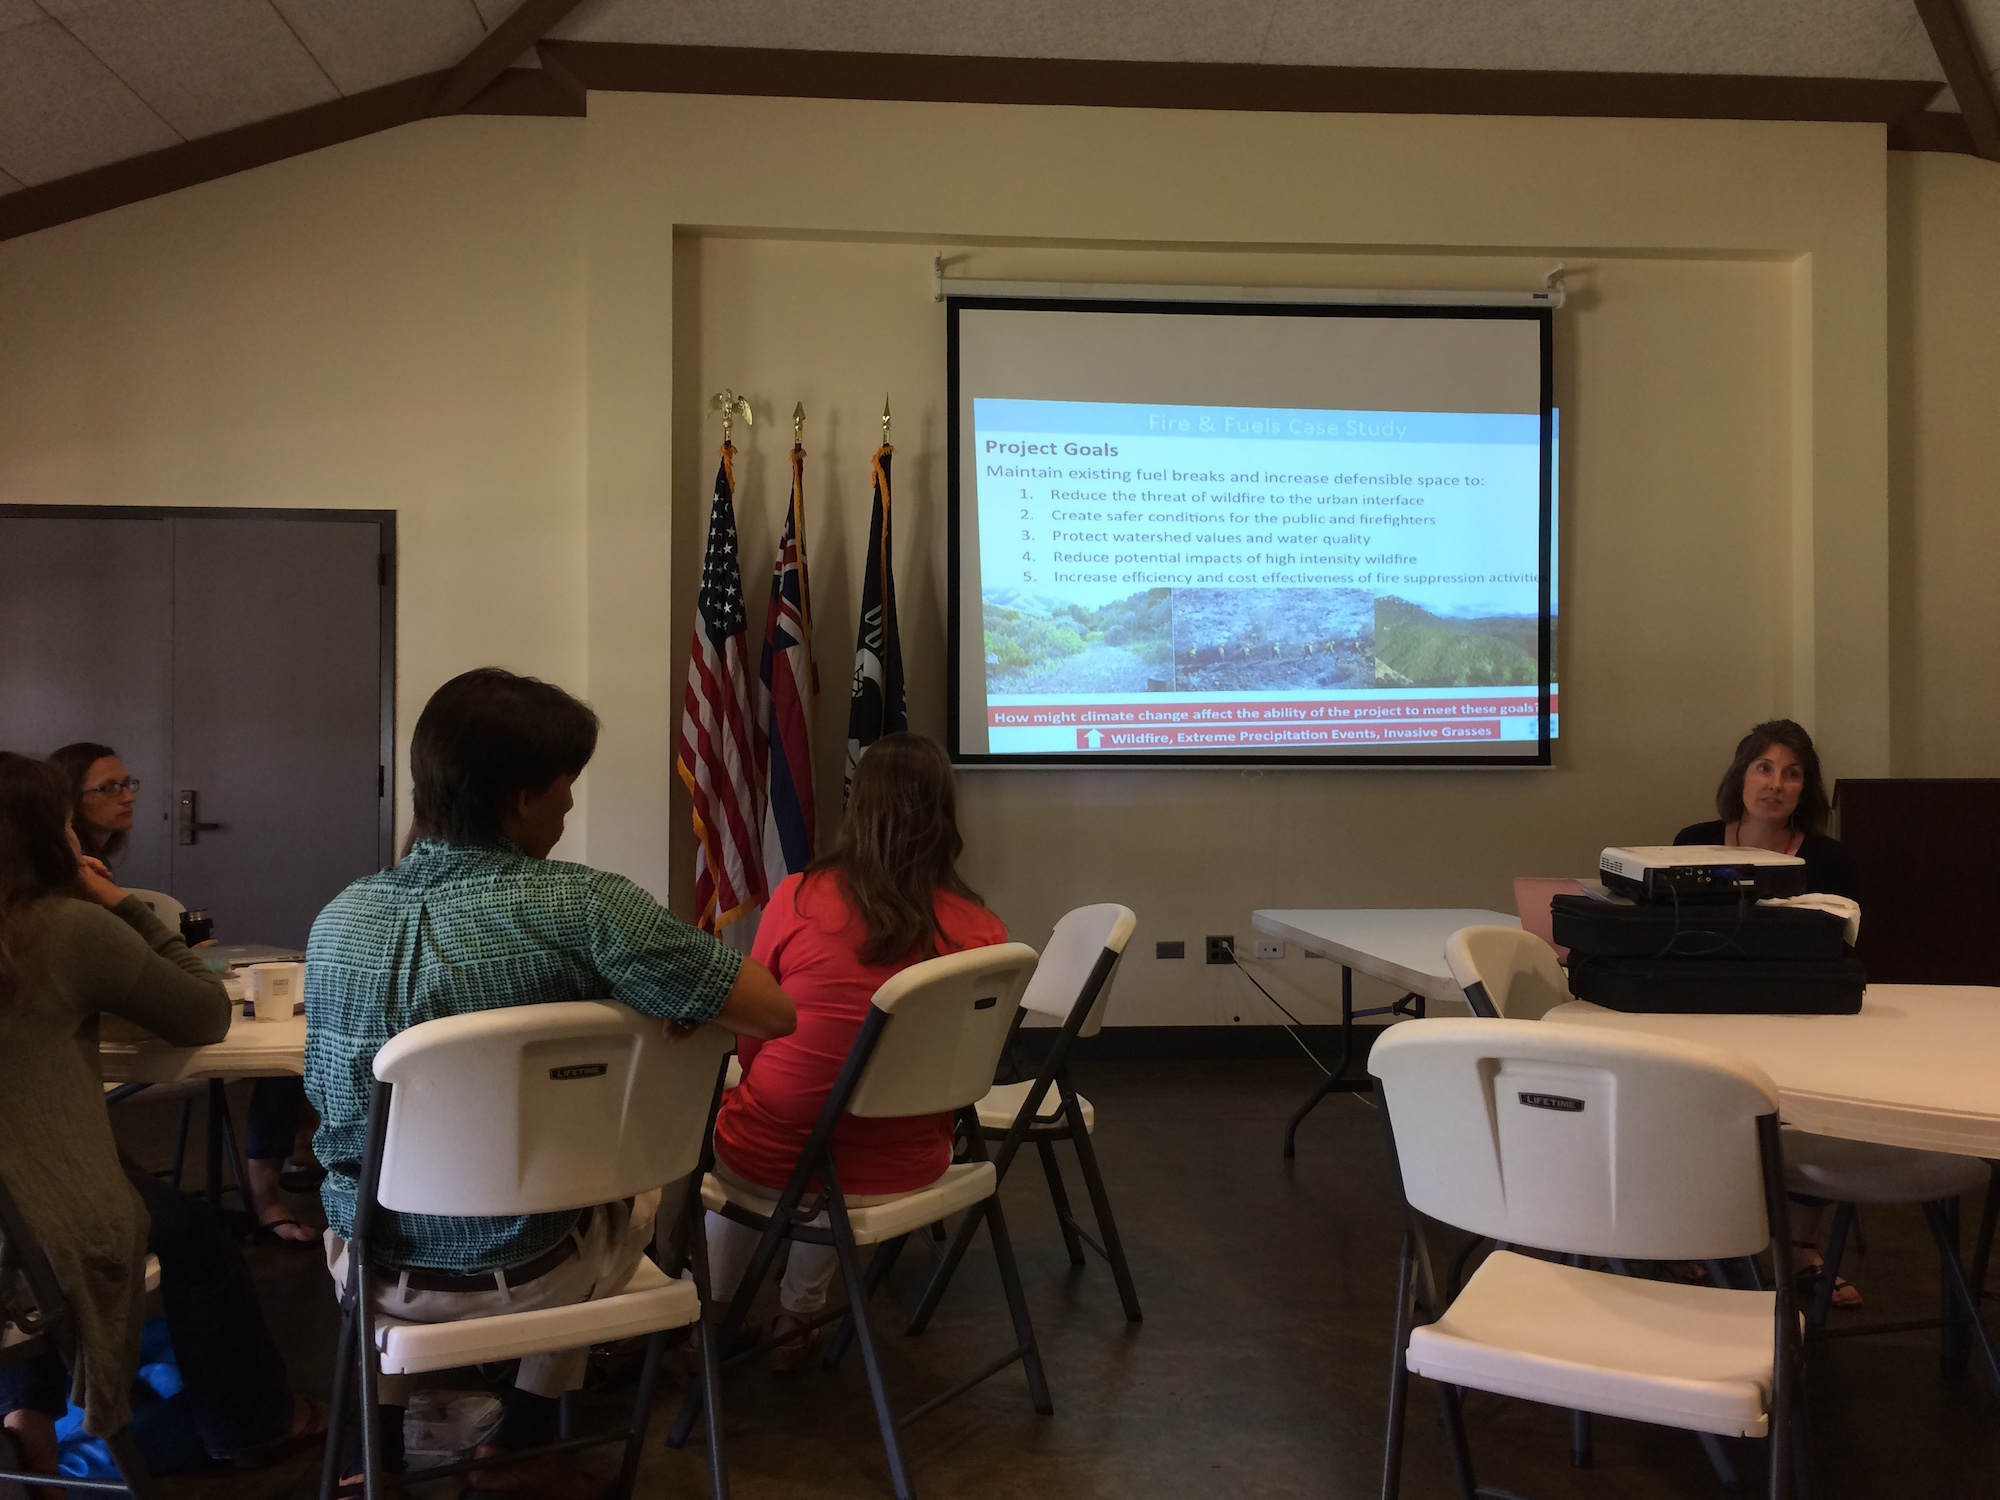 Wildfire was a major topic of discussion throughout the climate adaptation workshop.